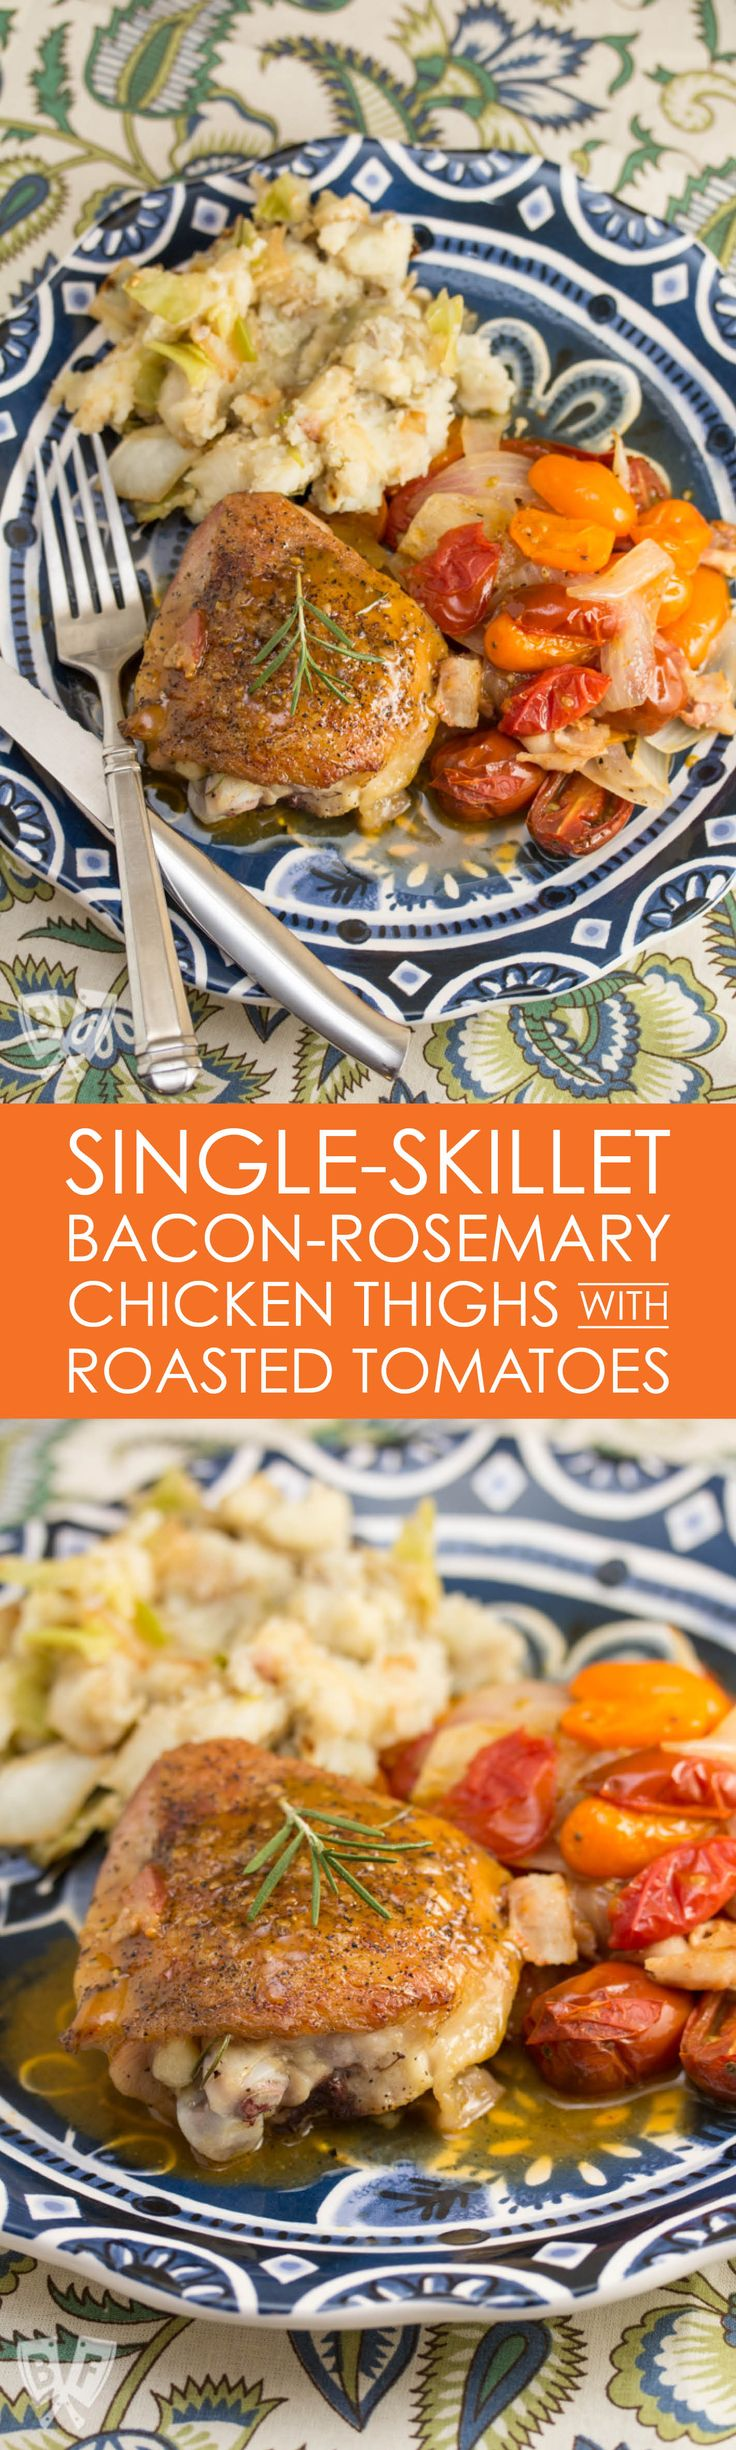 I love single skillet meals! This one-pan meal is great for busy weeknights. A quick pan sauce is the perfect finish for these crispy-skinned chicken thighs with bacon, rosemary, and tomatoes. #skilletmeals #weeknightdinner #onepanmeal #ironskillet #chickendinner #familyfavorite #comfortfood